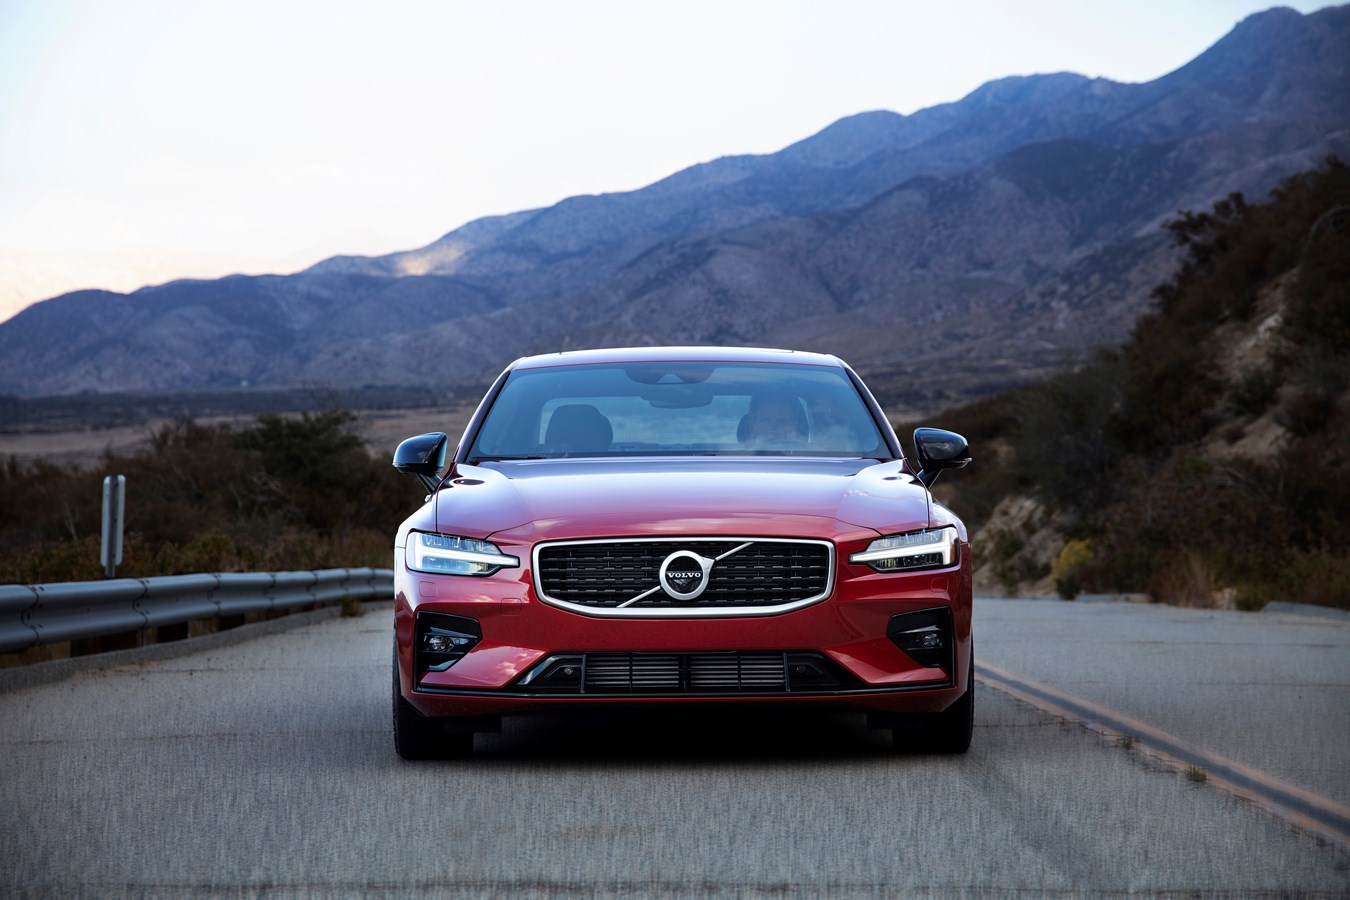 Volvo Cars Begins S60 Exports To Europe Volvo Car Usa Newsroom